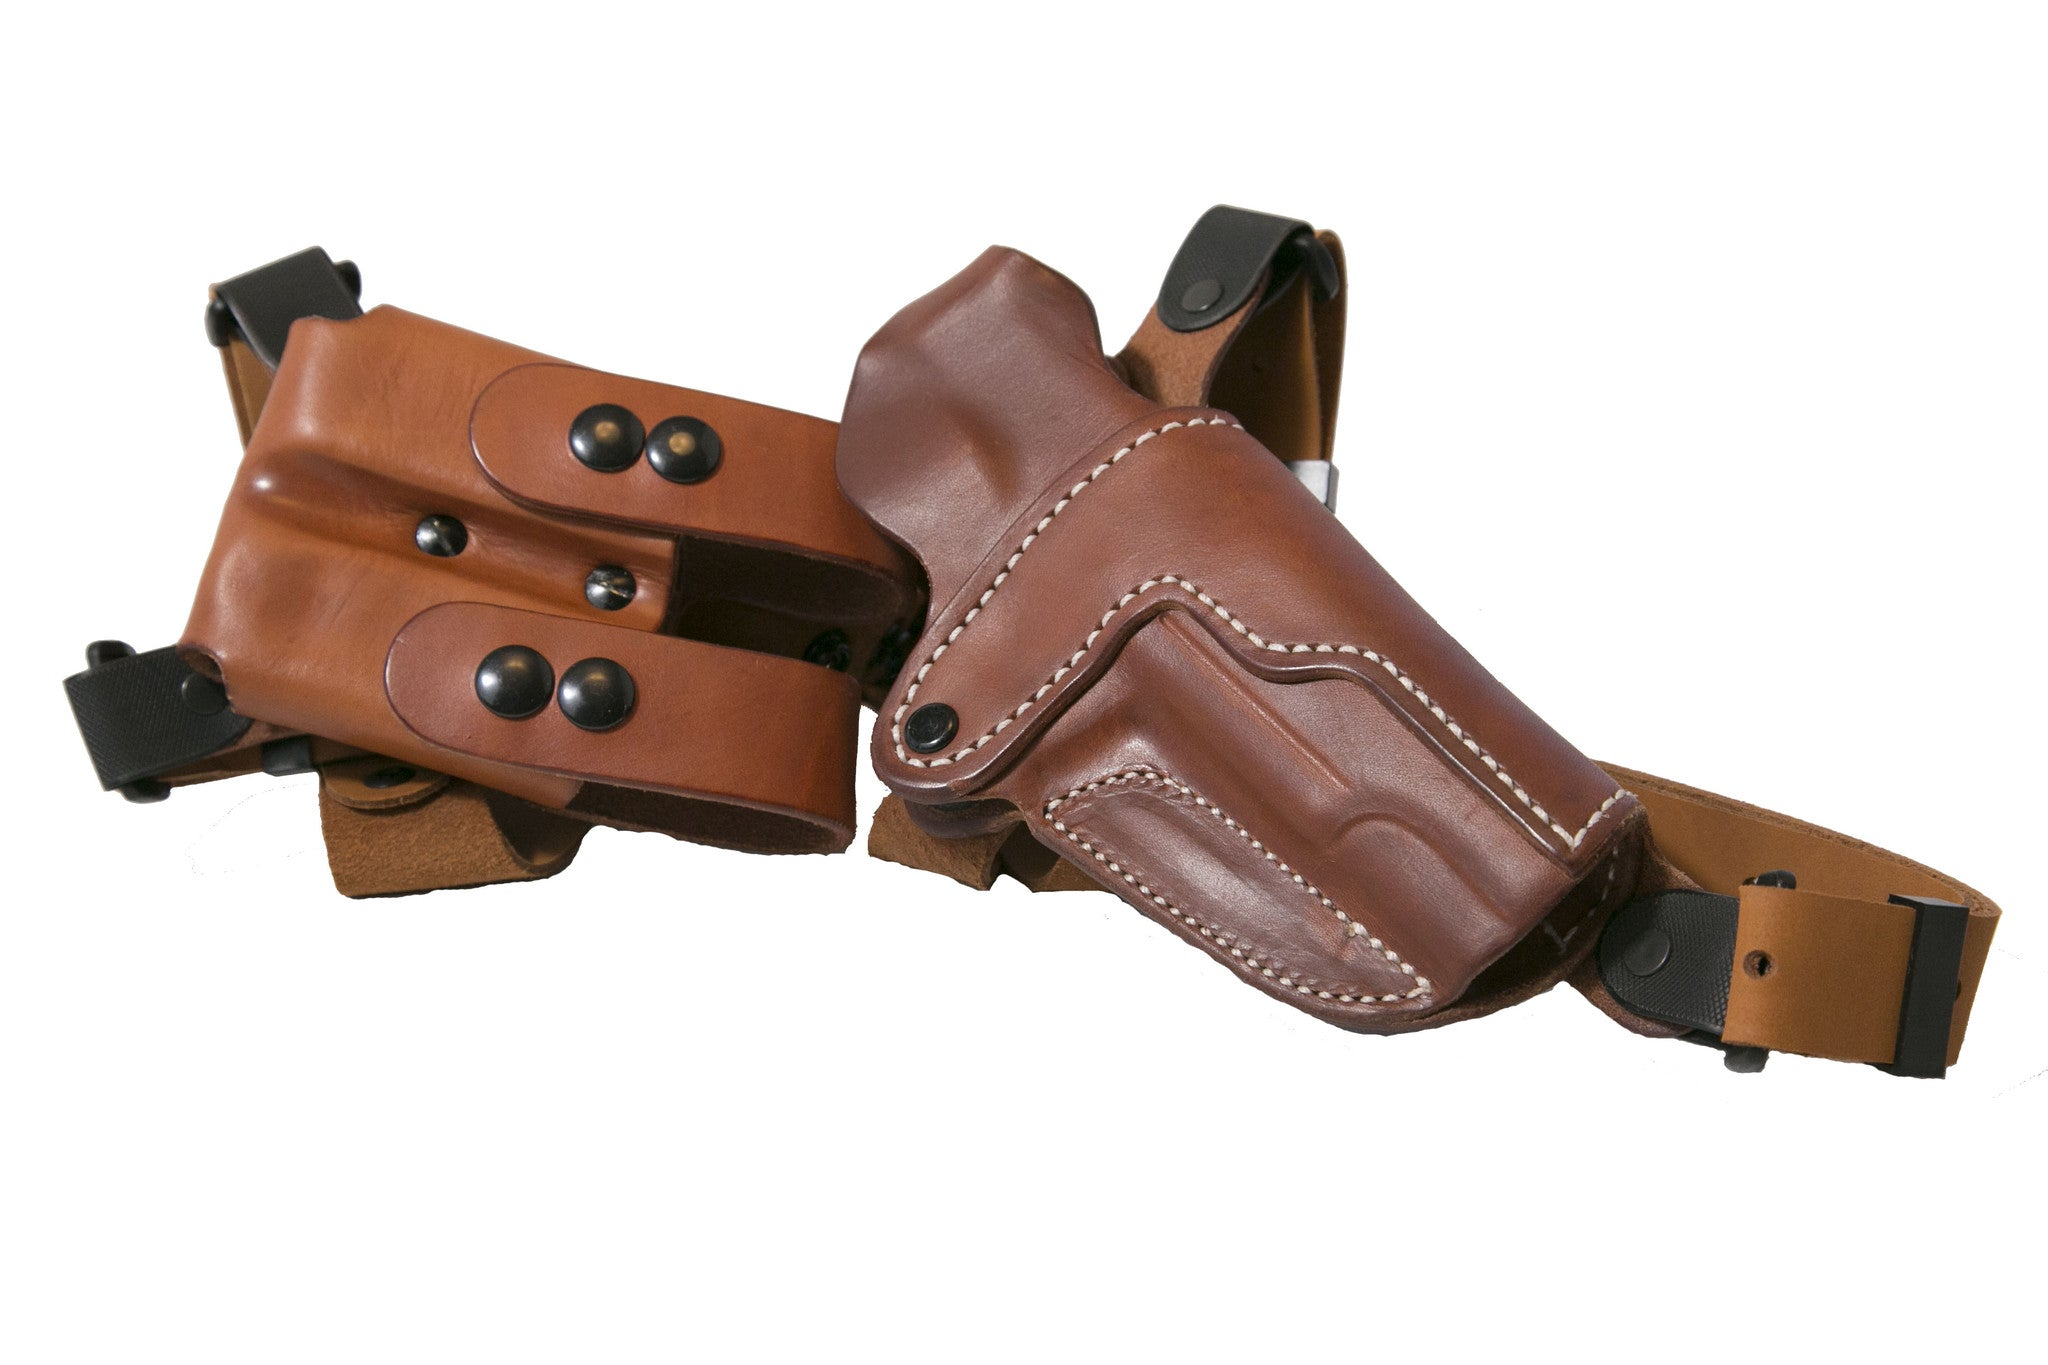 Leather Shoulder Holster, the Simple Shoulder Holster (SSR